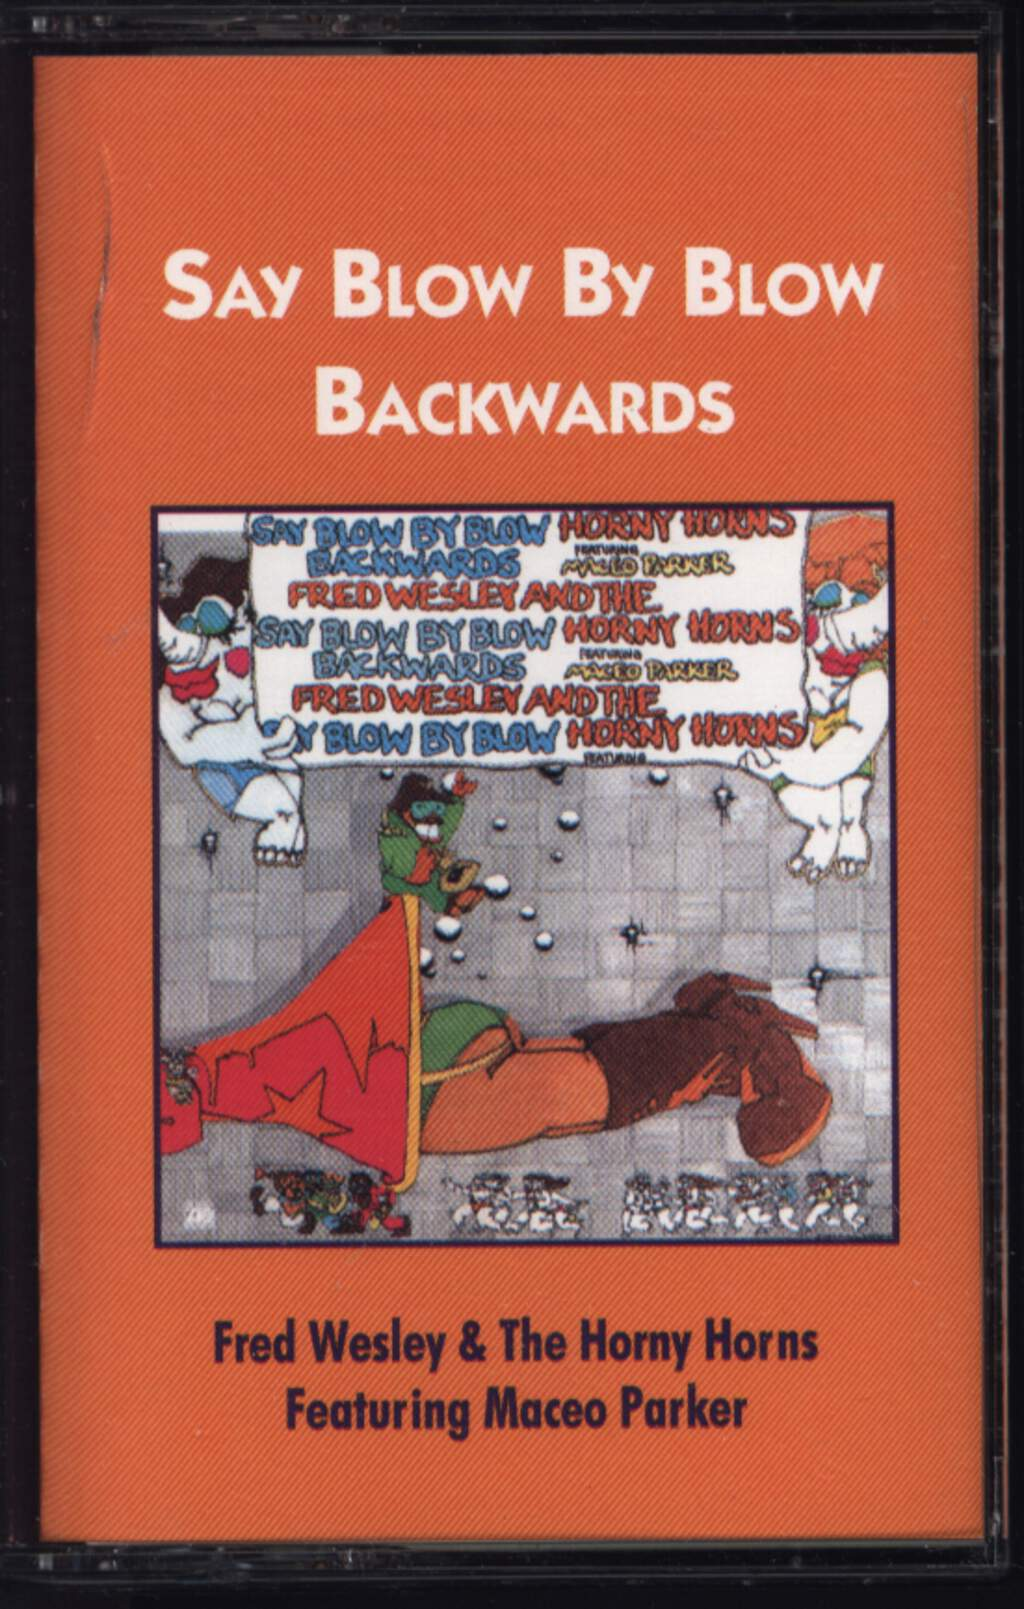 Fred Wesley & The Horny Horns: Say Blow By Blow Backwards, Compact Cassette